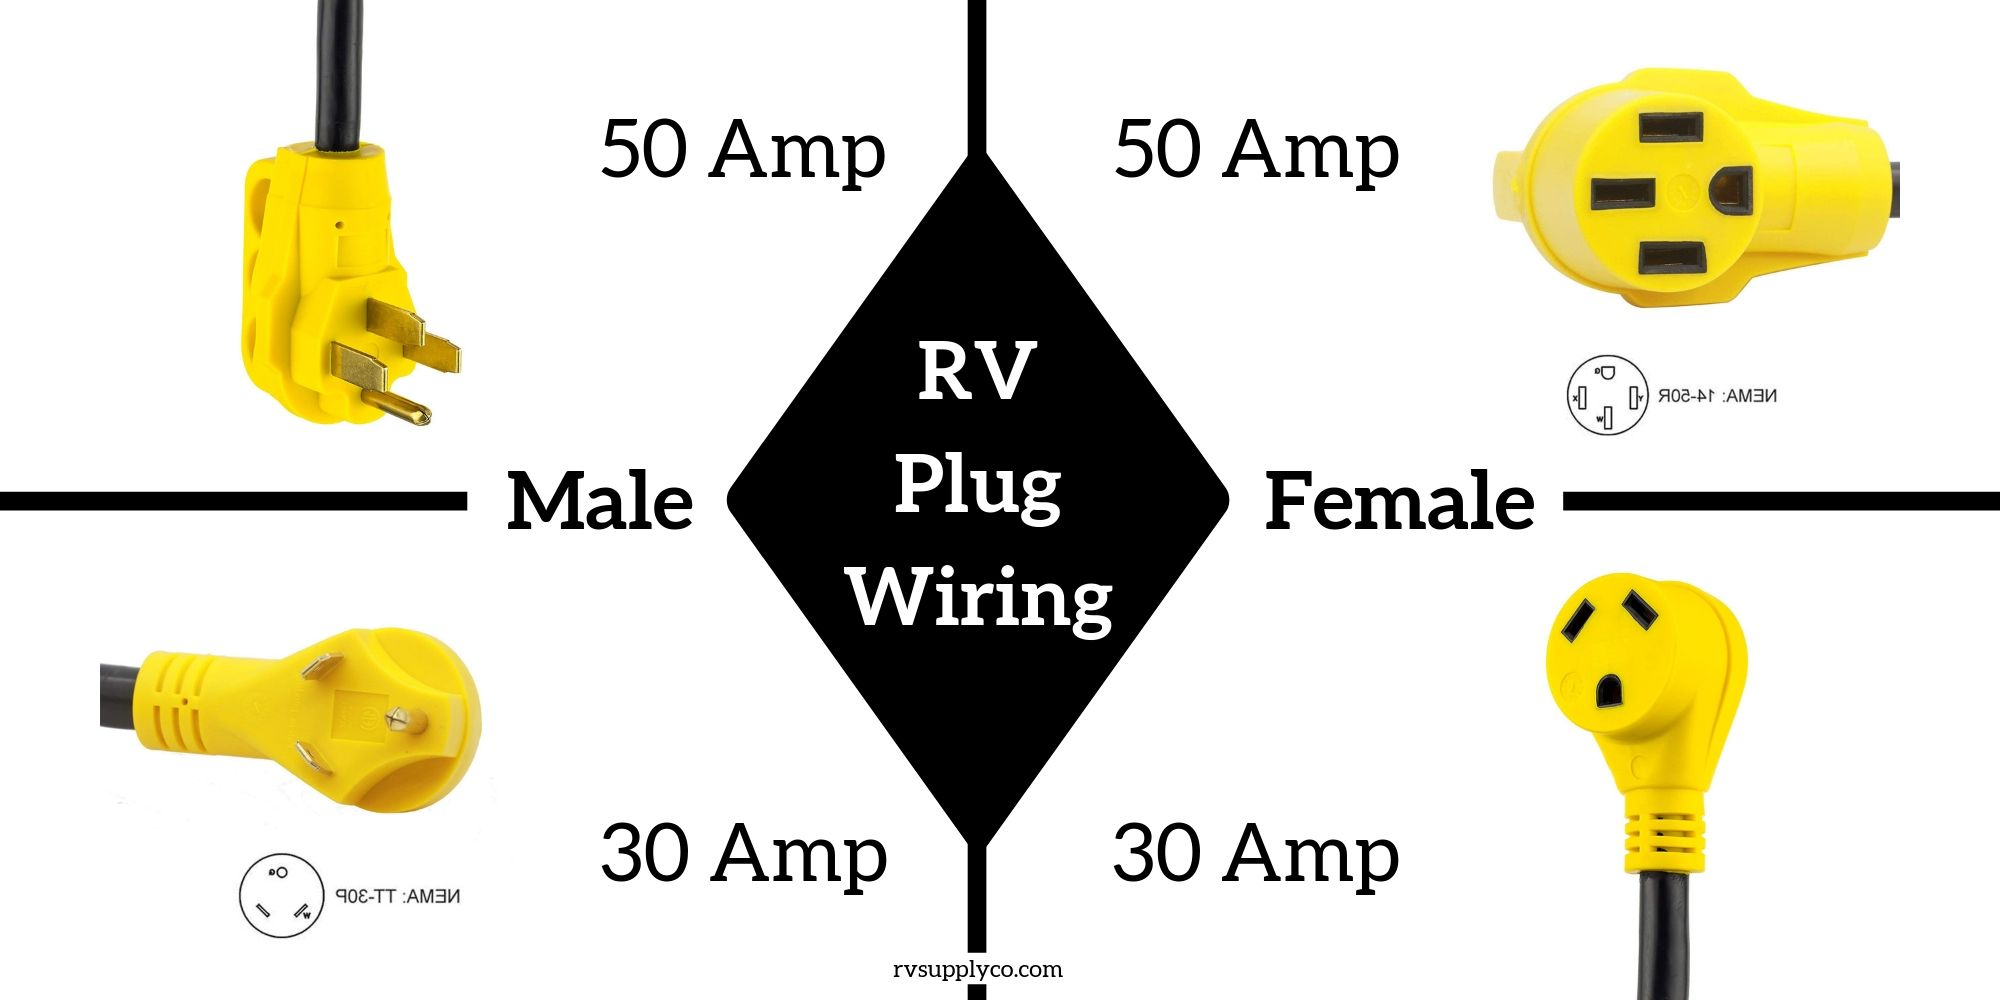 30 amp rv receptacle wiring diagram ultimate guide to rv wiring  outlets    plugs  for all skill levels  30 amp rv male plug wiring diagram rv wiring  outlets    plugs